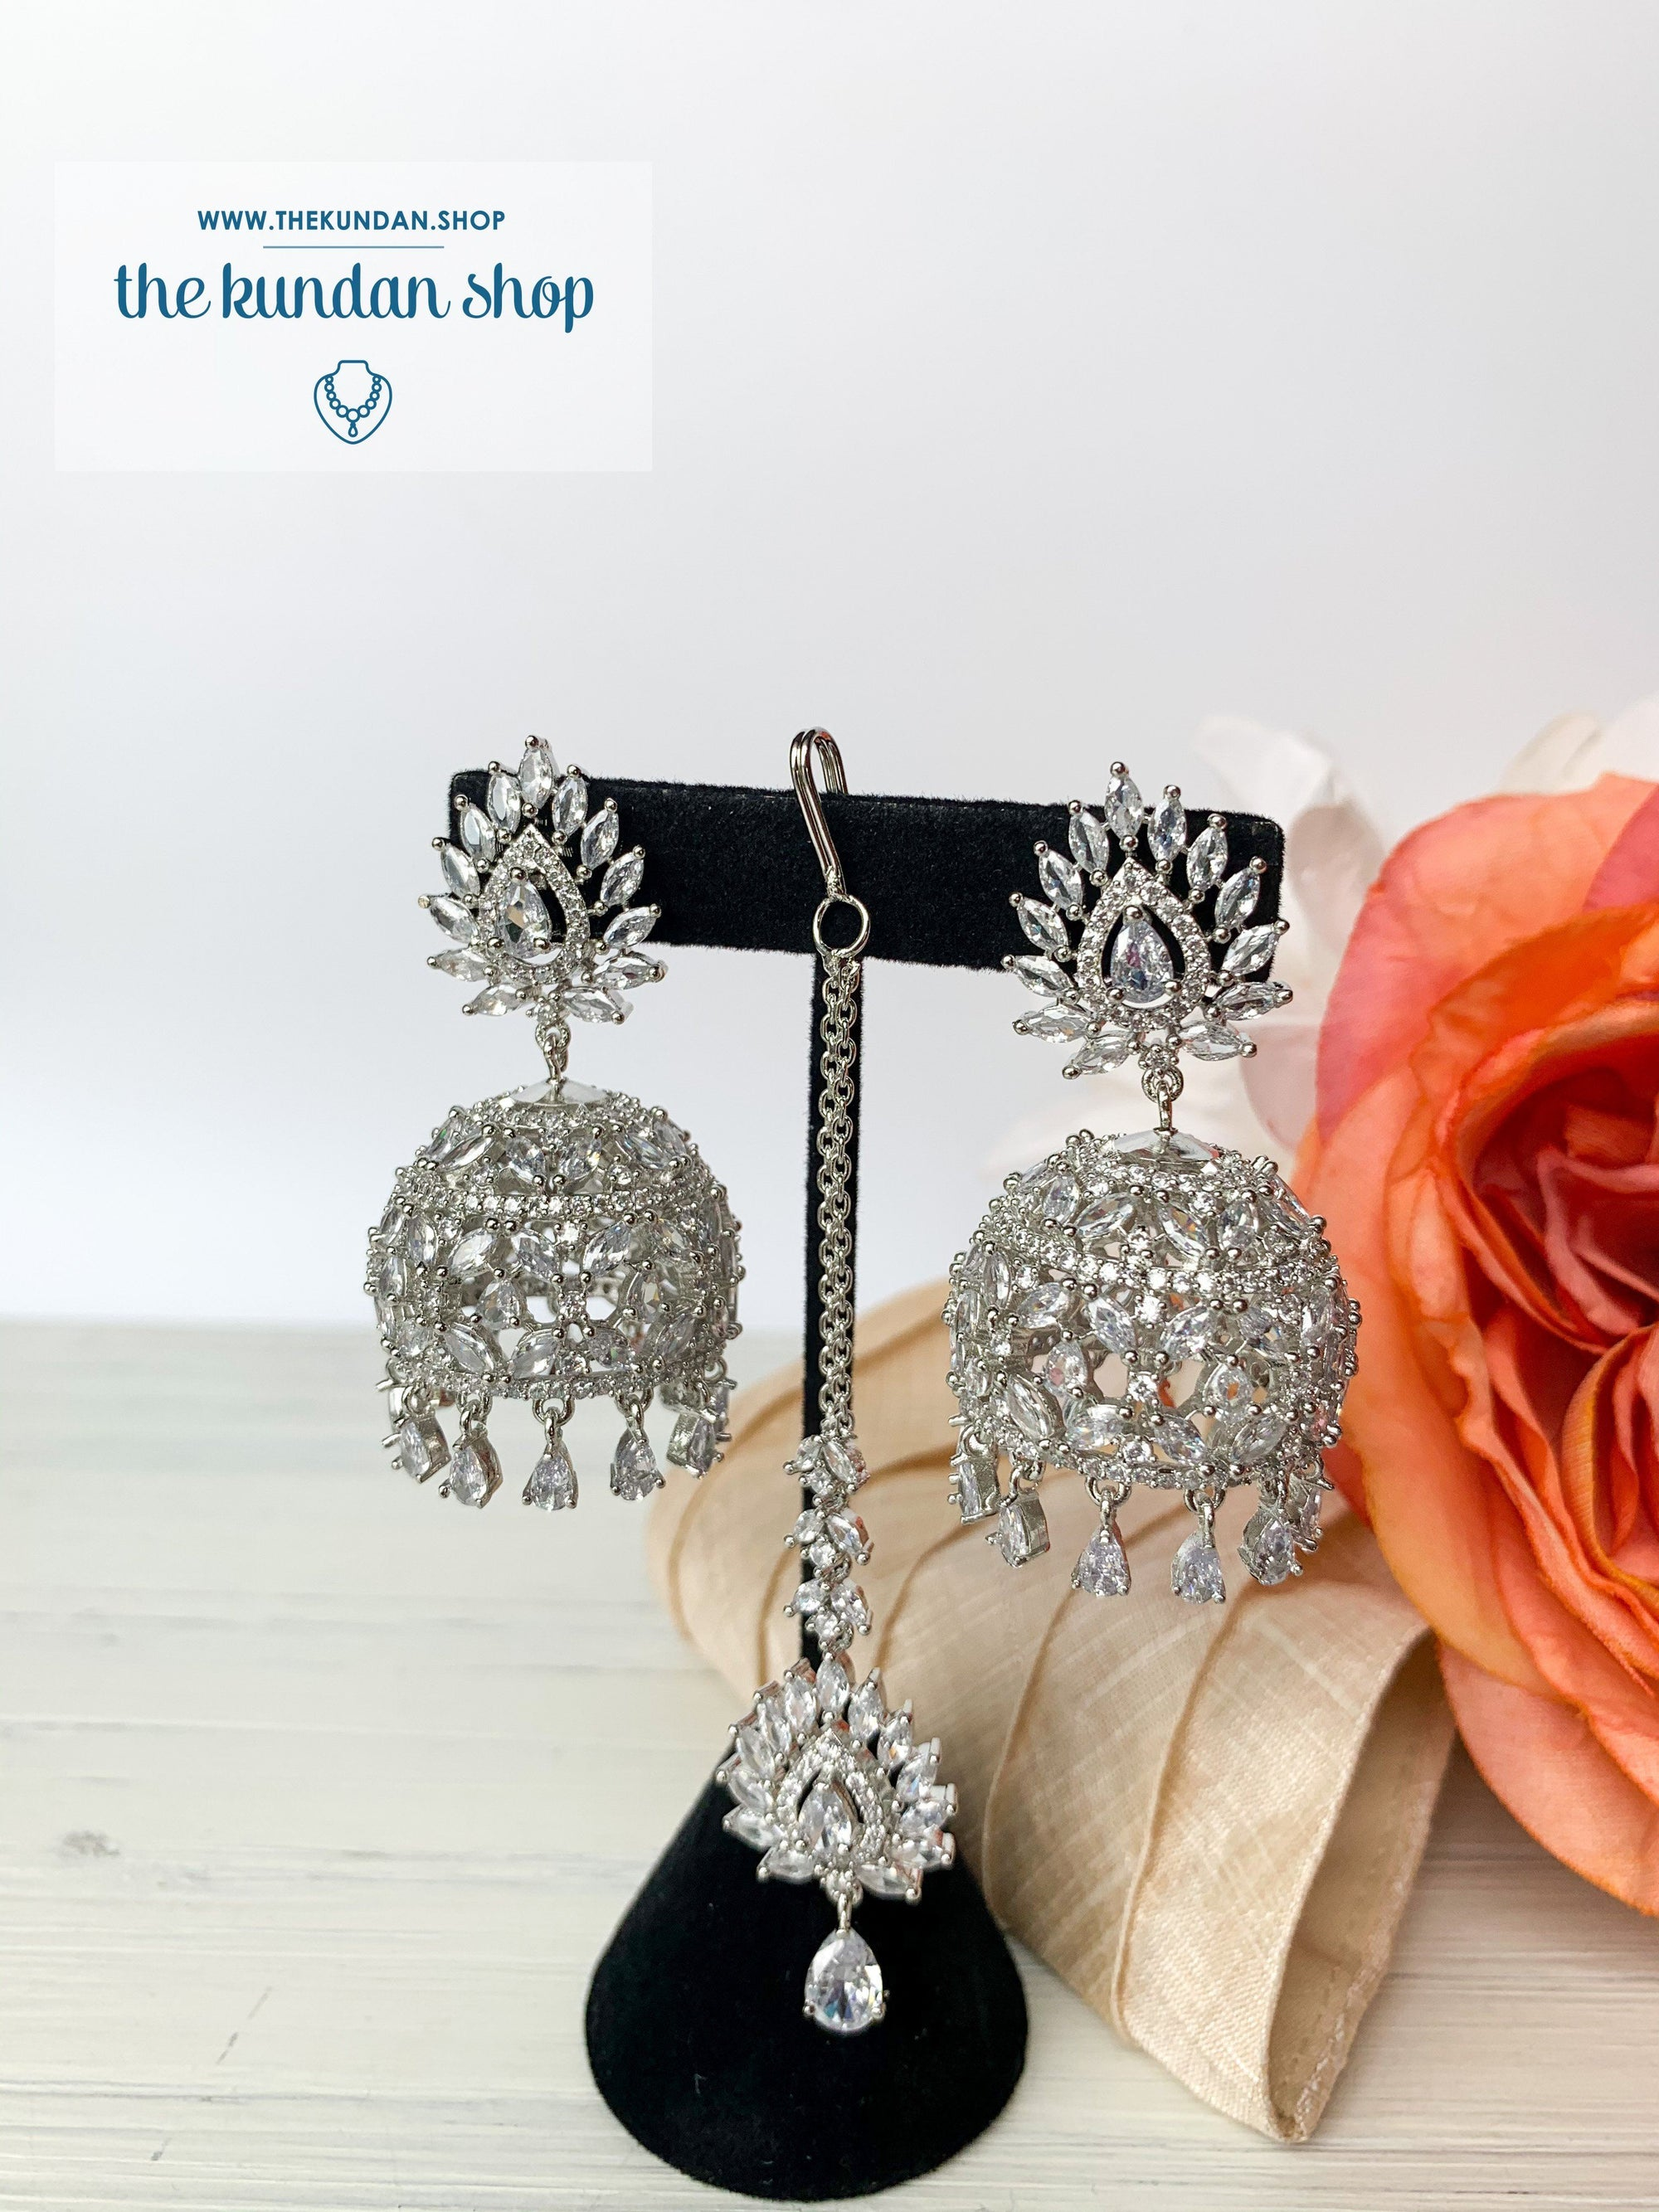 Ambiance in Silver, Earrings + Tikka - THE KUNDAN SHOP